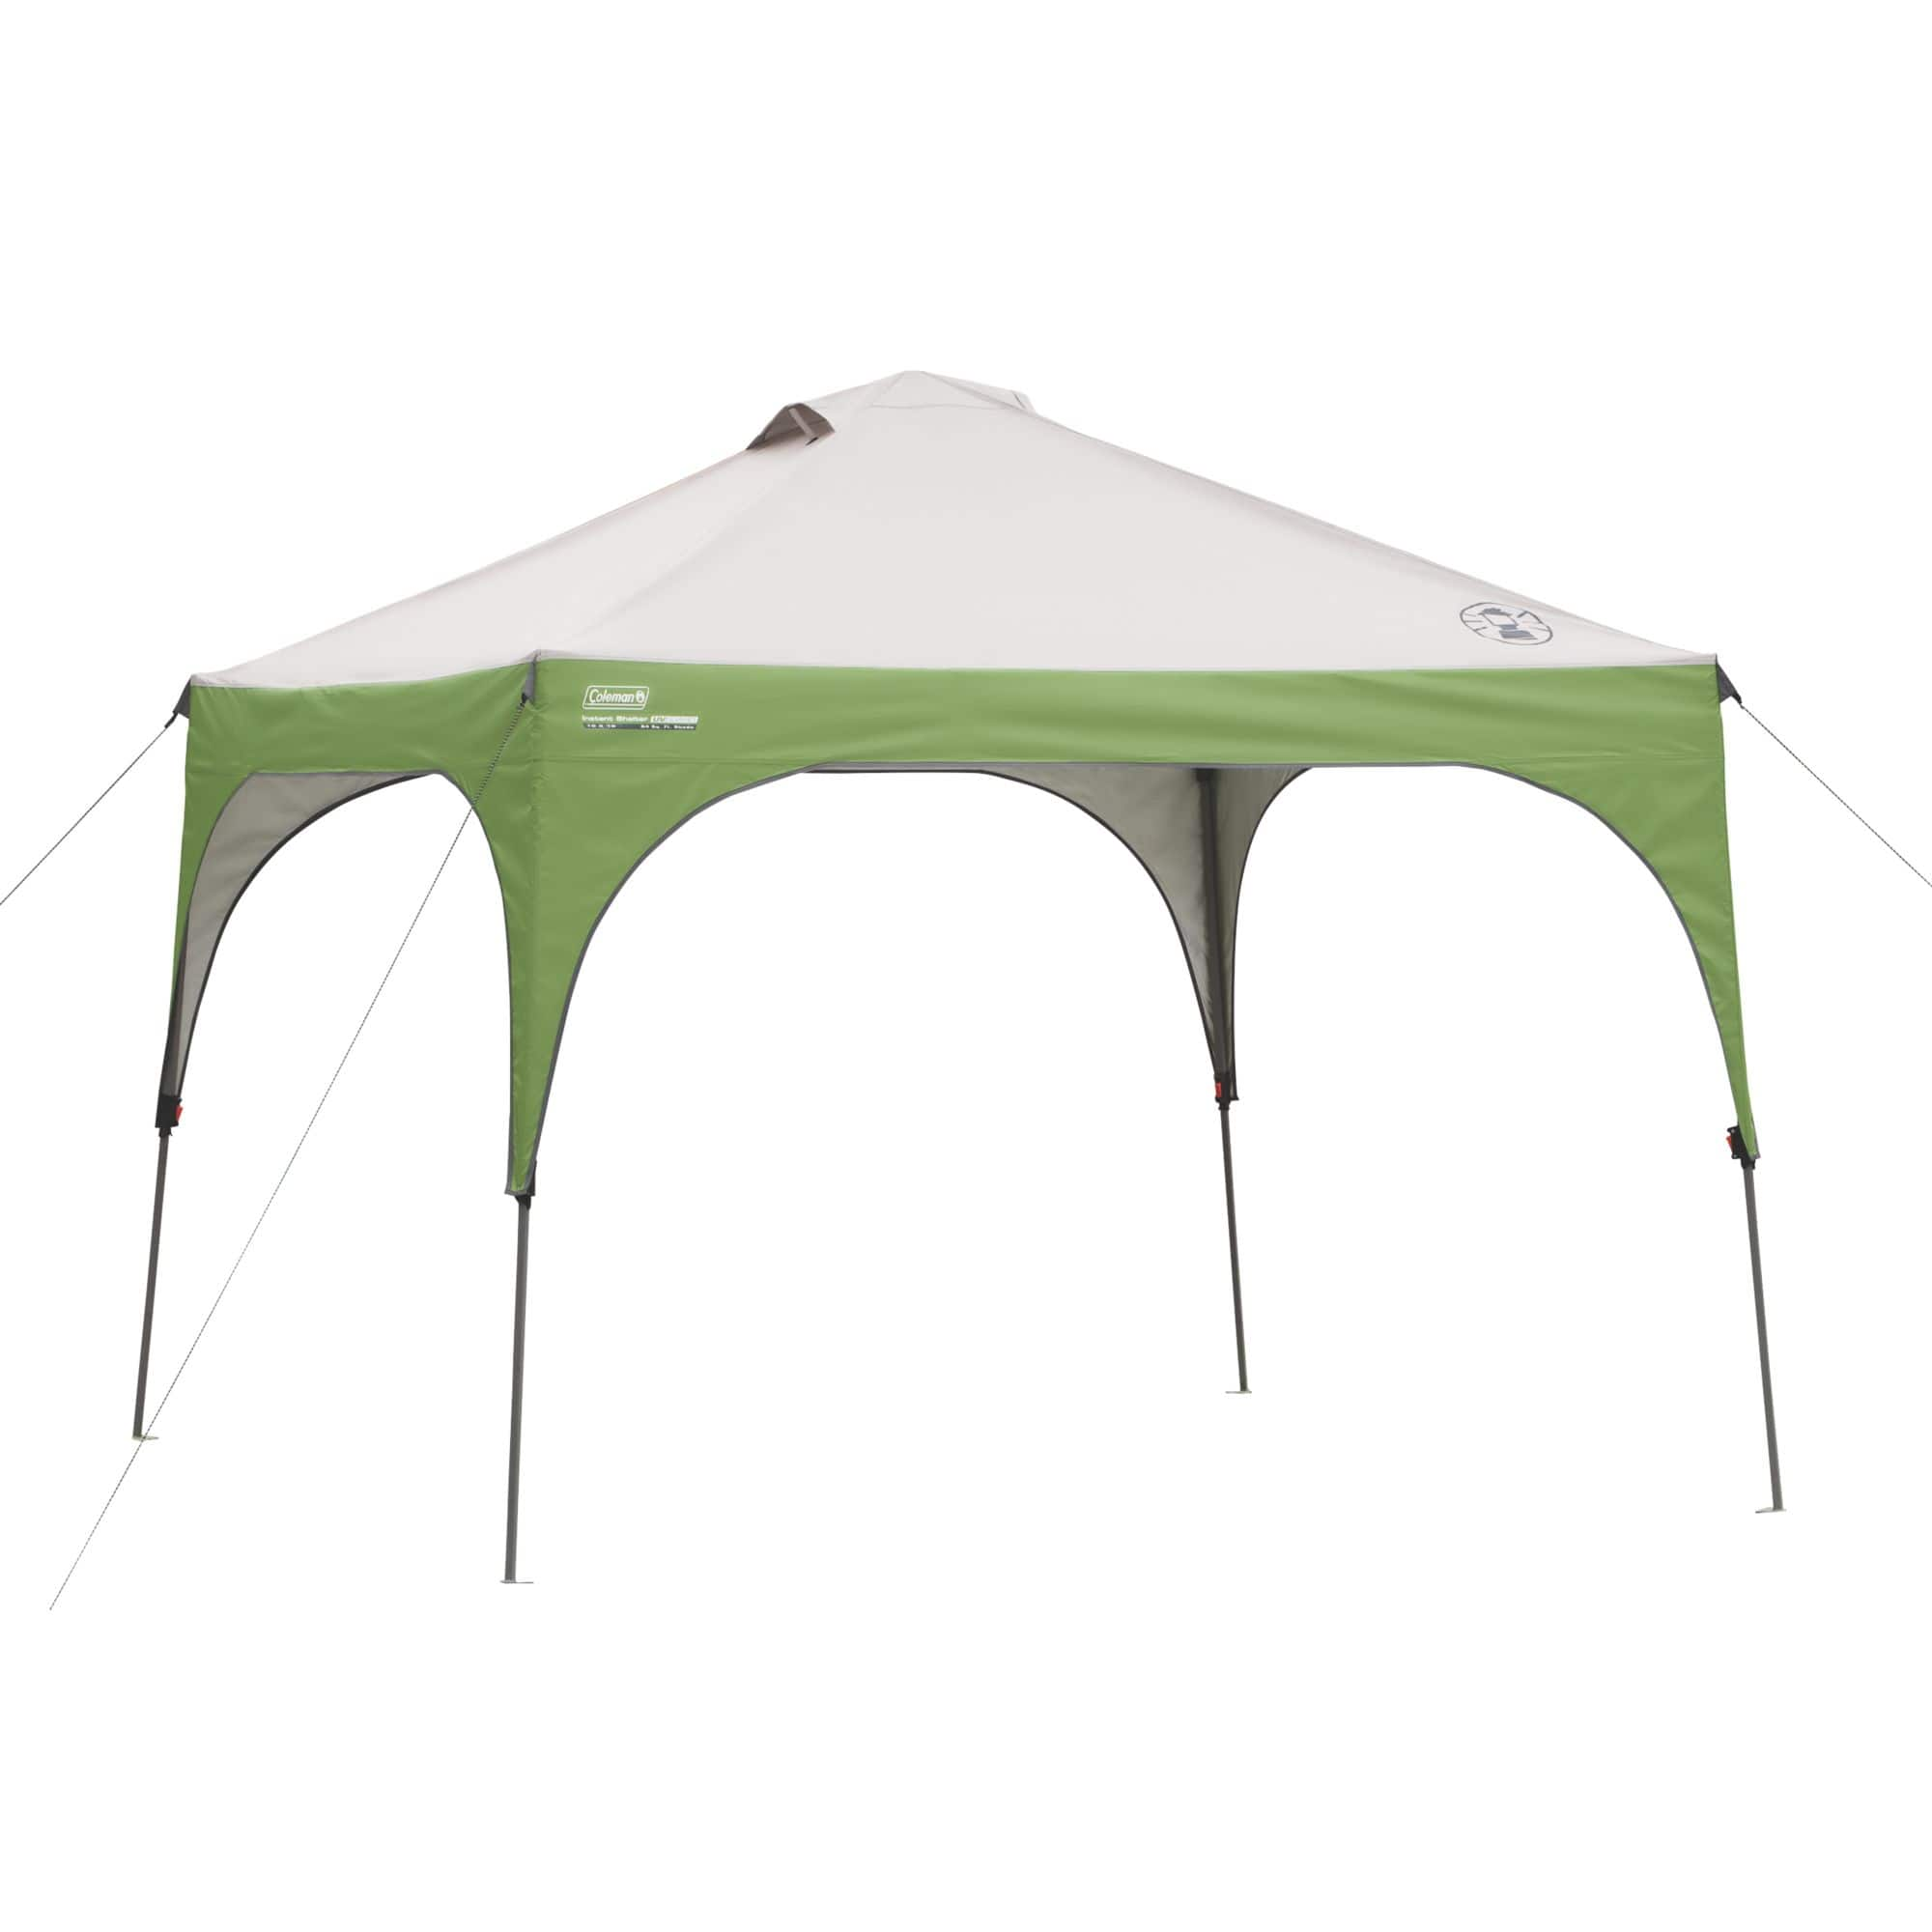 Coleman: 10 x 10 Instant Sun Shelter - $101.49 Plus Free Shipping